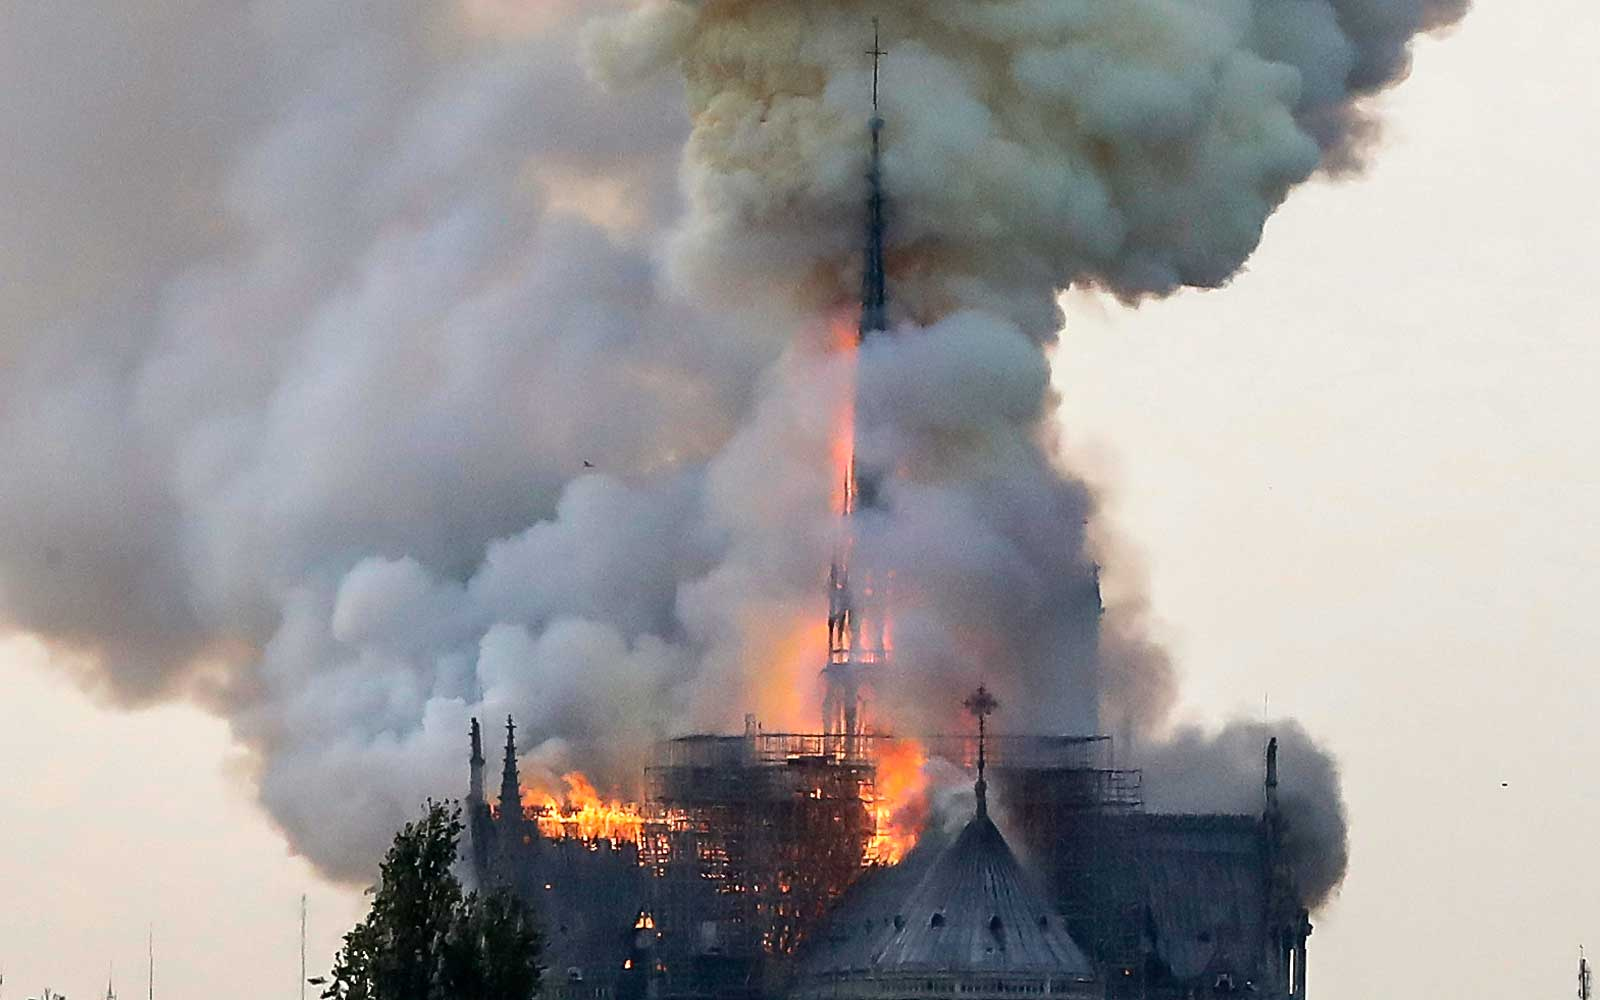 Notre Dame Fire: Paris Cathedral Engulfed in Flames